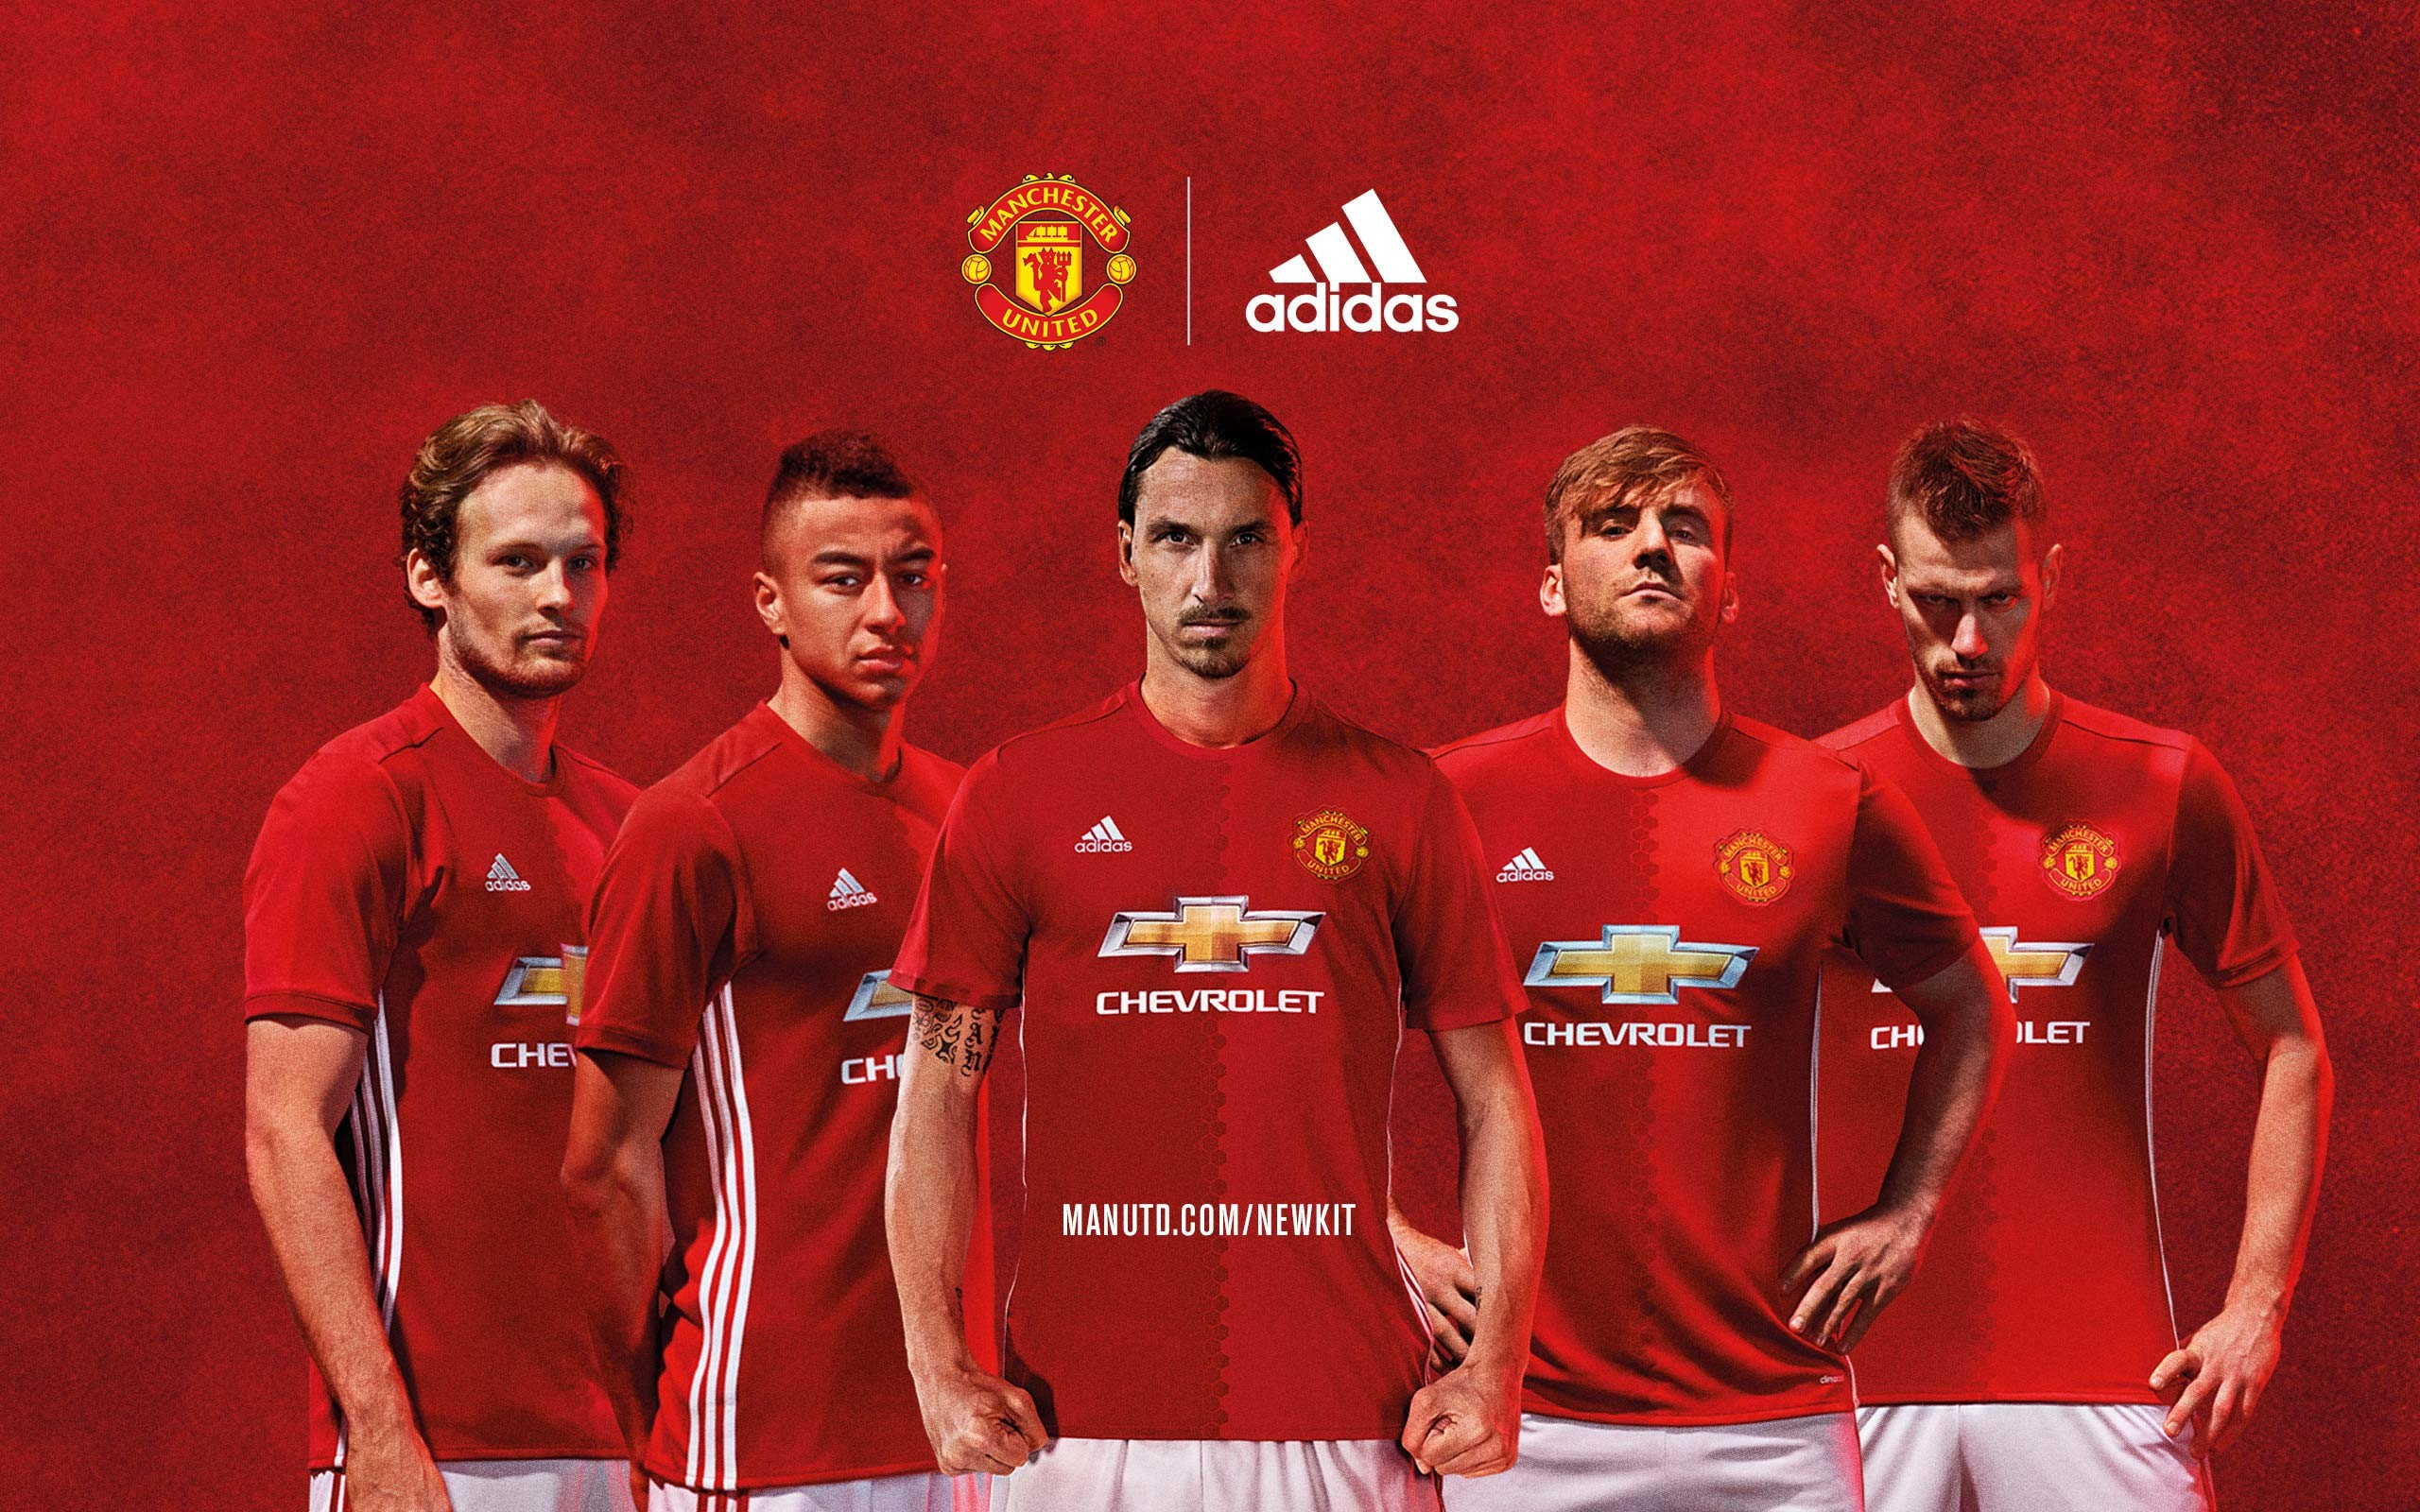 Manchester United Wallpaper HD the best 65 images in 2018 2560x1600